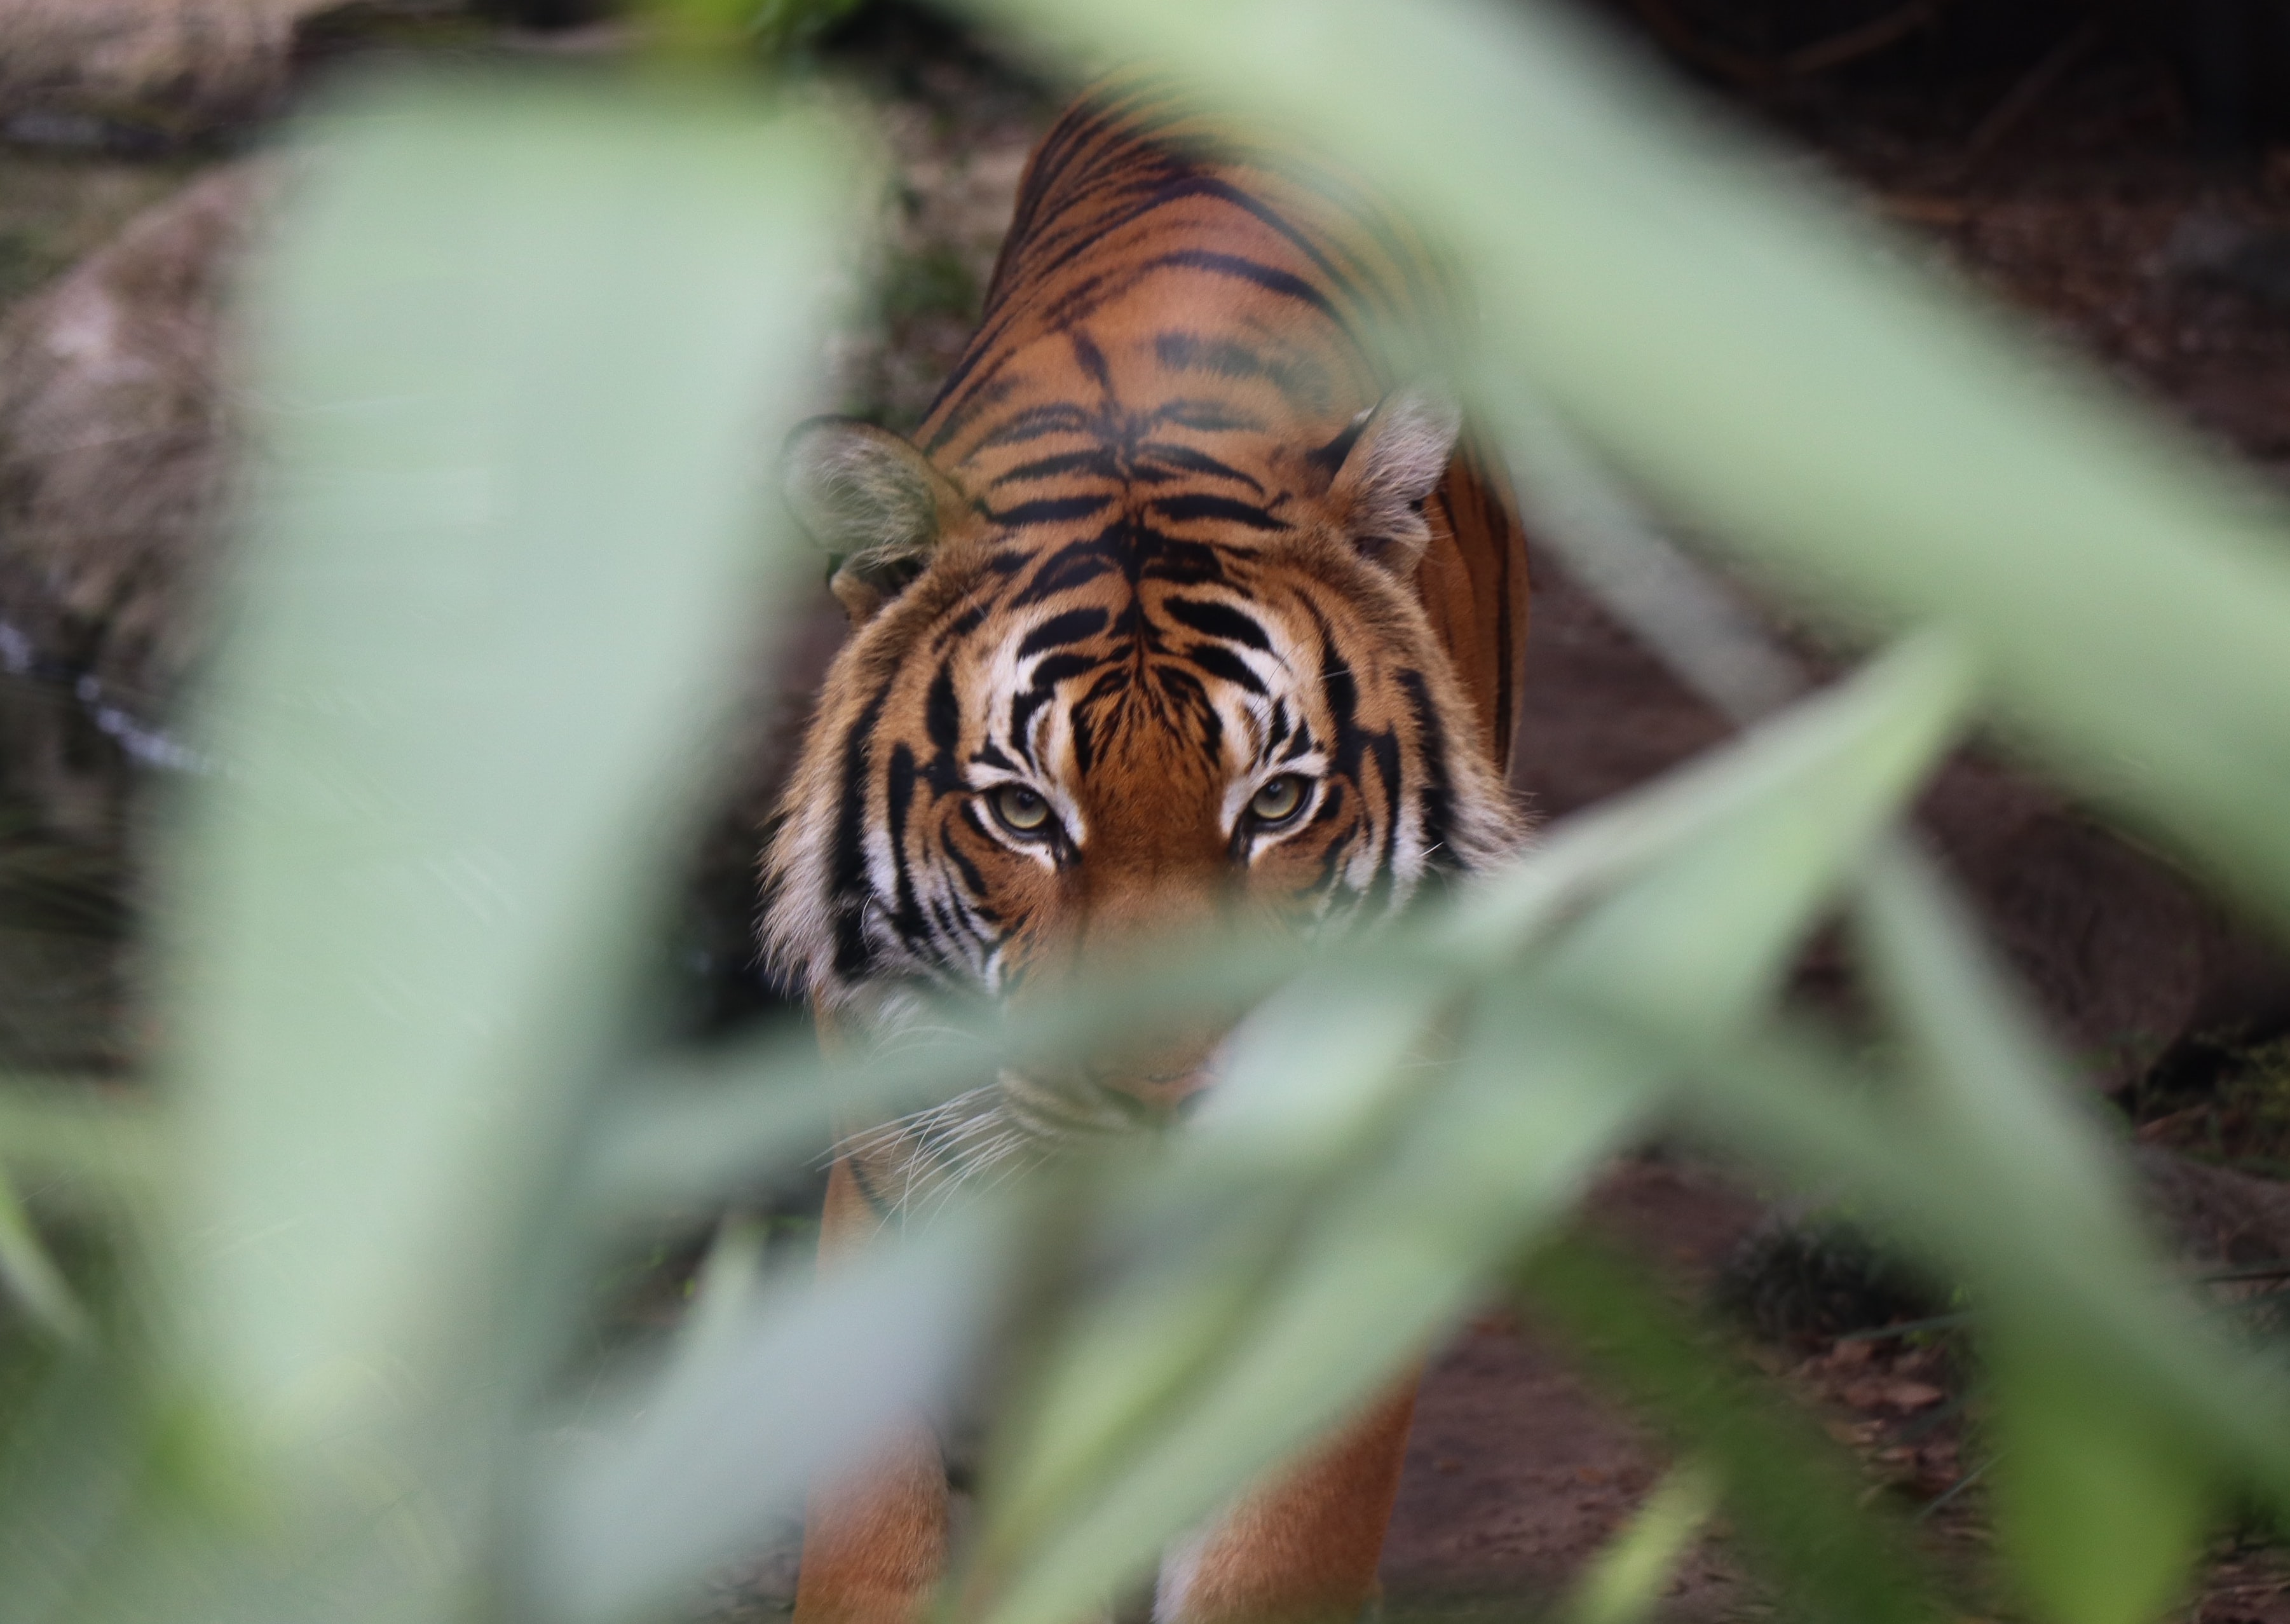 tiger walking towards on green leaf plant during daytime